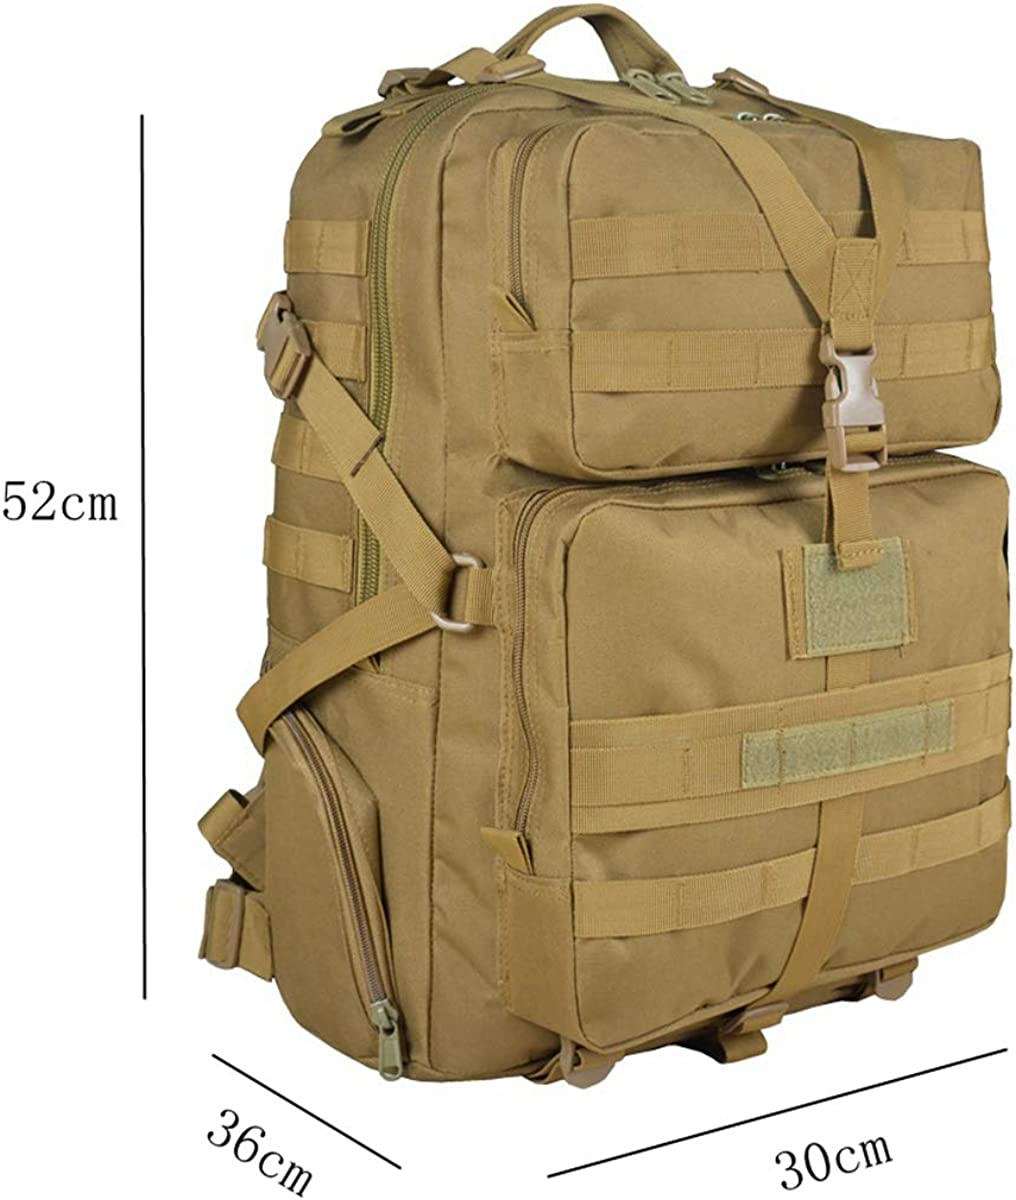 Tactical backpack outdoor climbing 45 liters//attack backpack travel camping bag hiking tactical backpack mud-colored large Oxford cloth backpack